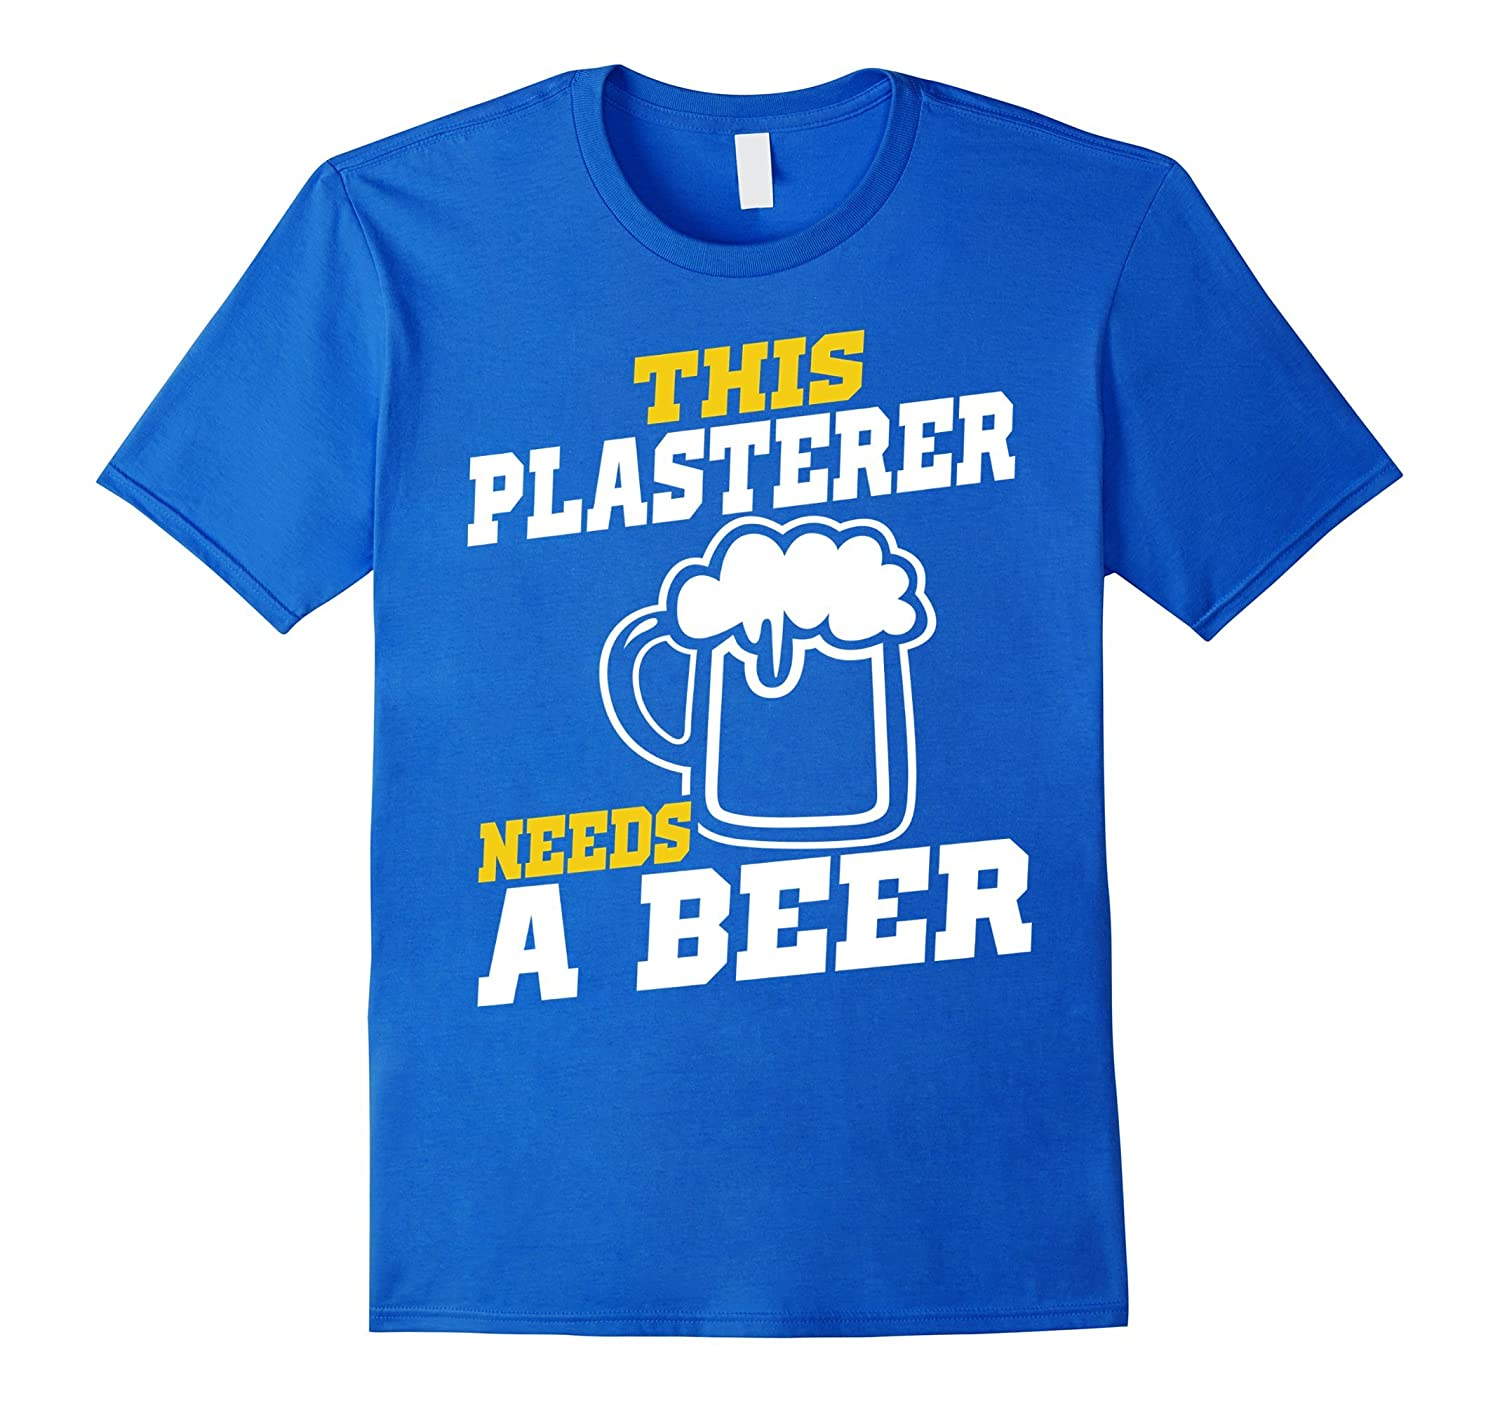 This Plasterer Needs A Beer T-Shirt-TD